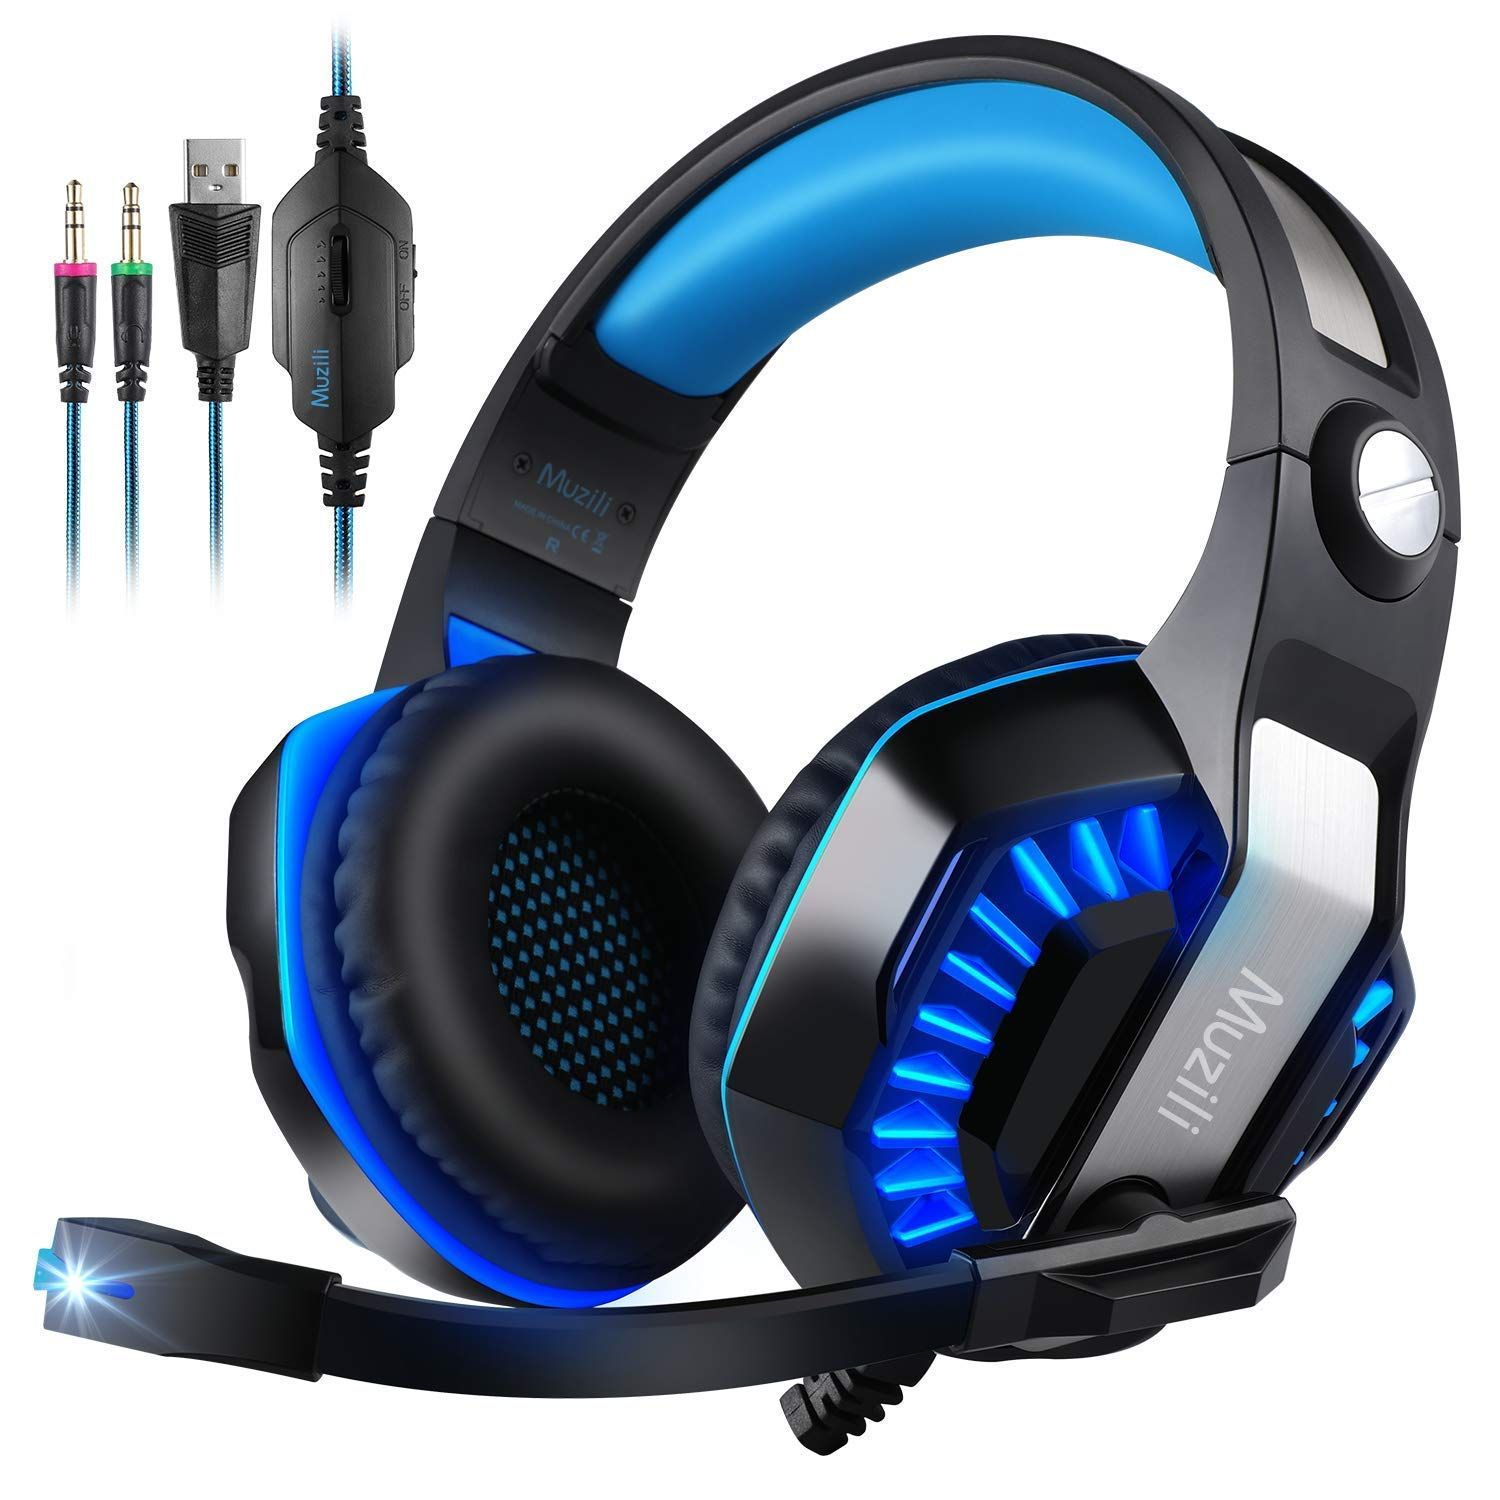 Muzili Gaming Headset,7.1 Stereo Gaming Headphone for PC,PS4,Xbox  One,Ipad,Mobile Phone,Noise-Cancelling Headset and M… | Gaming headphones, Gaming  headset, Headset